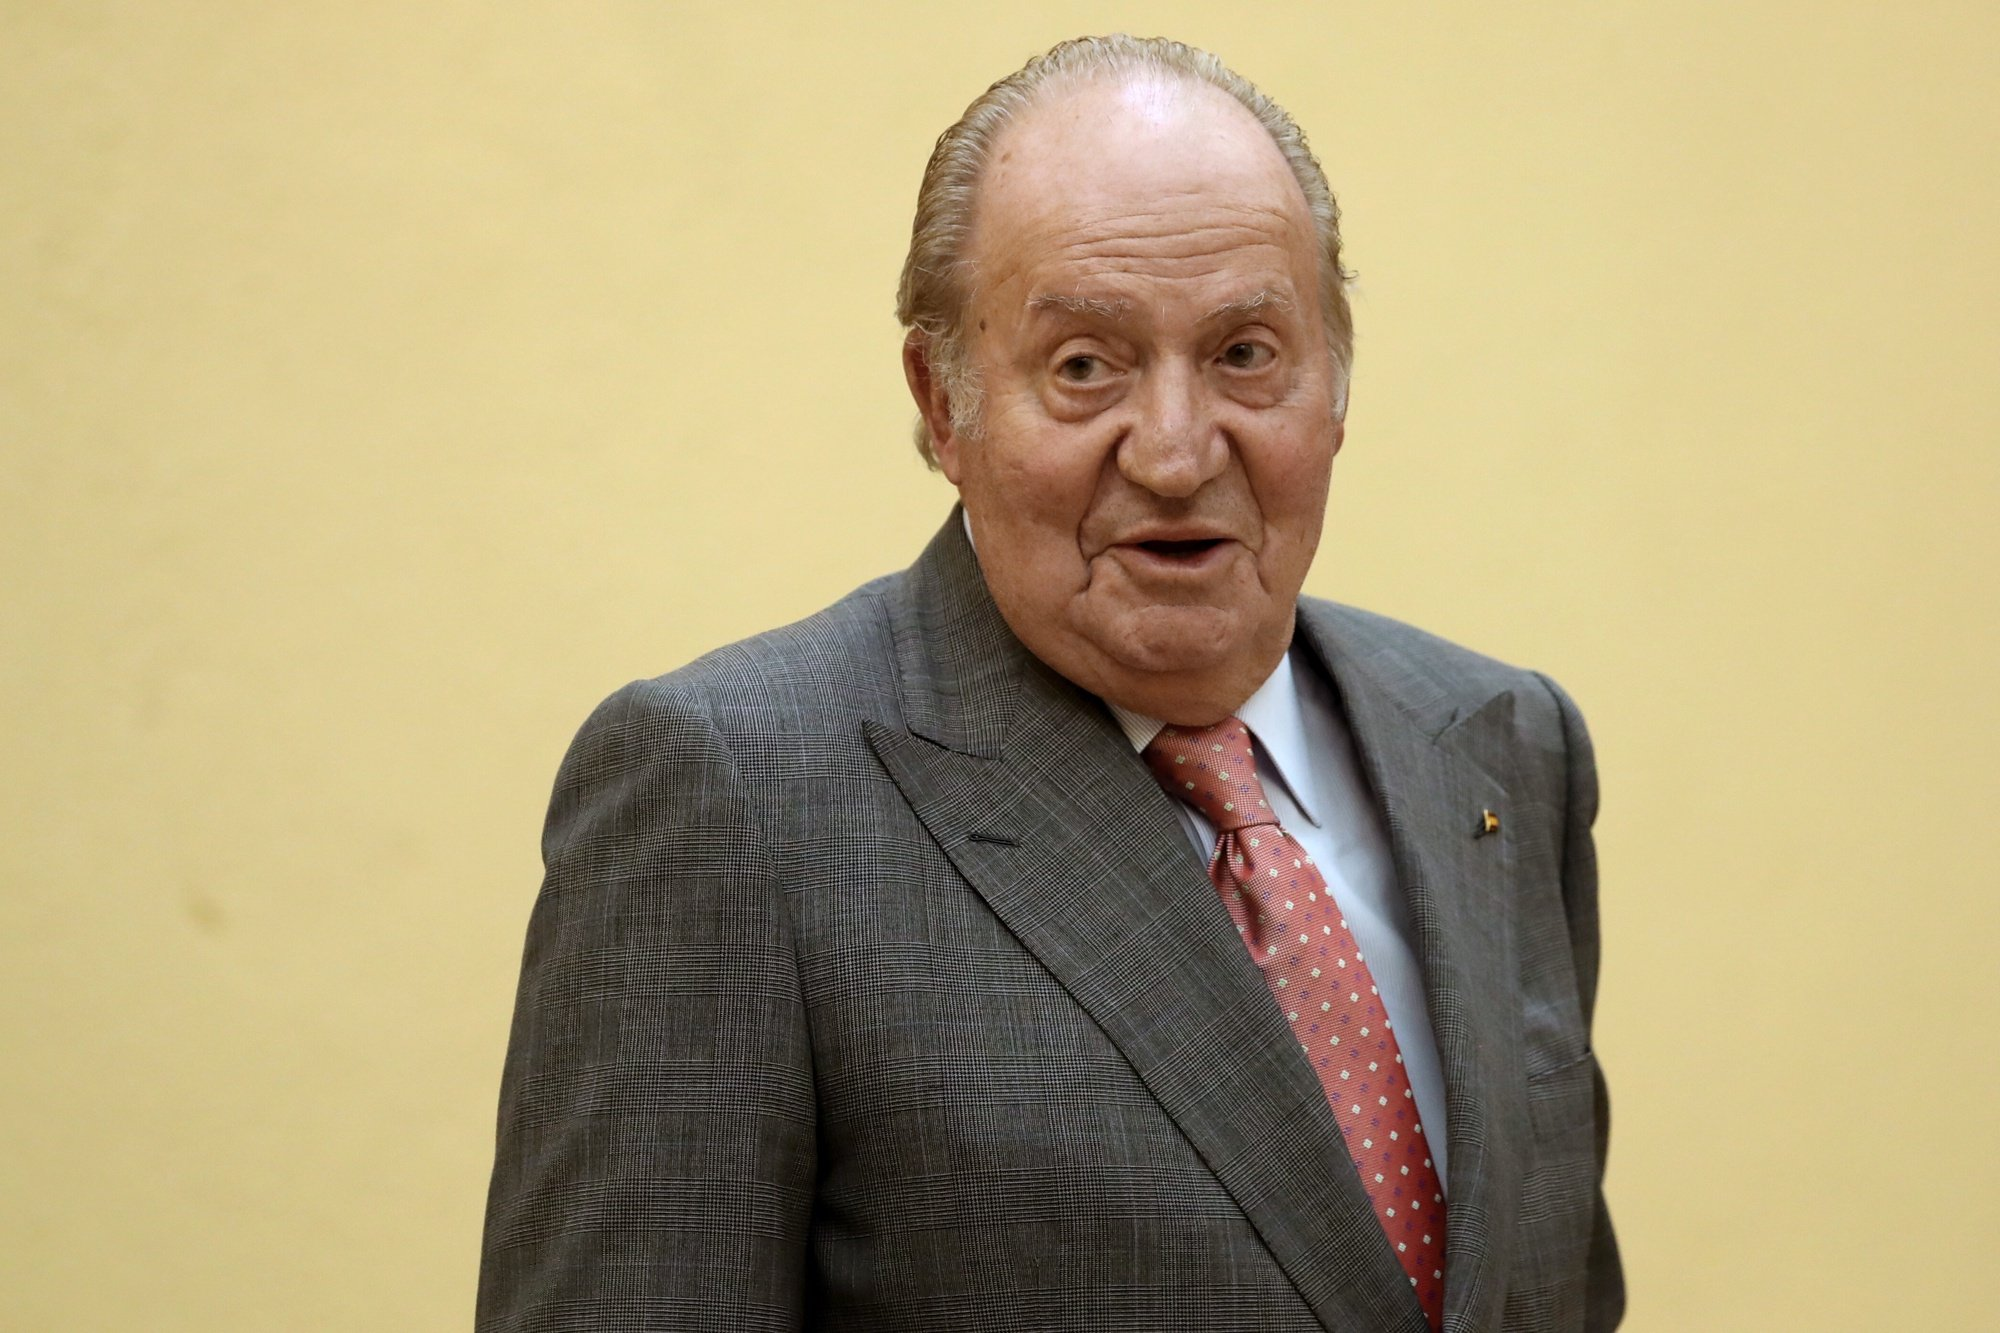 epa08582268 (FILE) - Spain King Juan Carlos I arrives for a meeting of the COTEC Foundation patronage at the Palace of El Pardo in Madrid, Spain, 31 May 2017 (reissued on 03 August 2020). Spanish Royal Household has announced that Emeritus King Juan Carlos I has proclaimed his intended decision to move abroad so as to not interfere in the image of the Spanish monarchy due to his alleged implication in a Swiss offshore account investigation. EFE/Sergio Barrenechea  EPA/Sergio Barrenechea